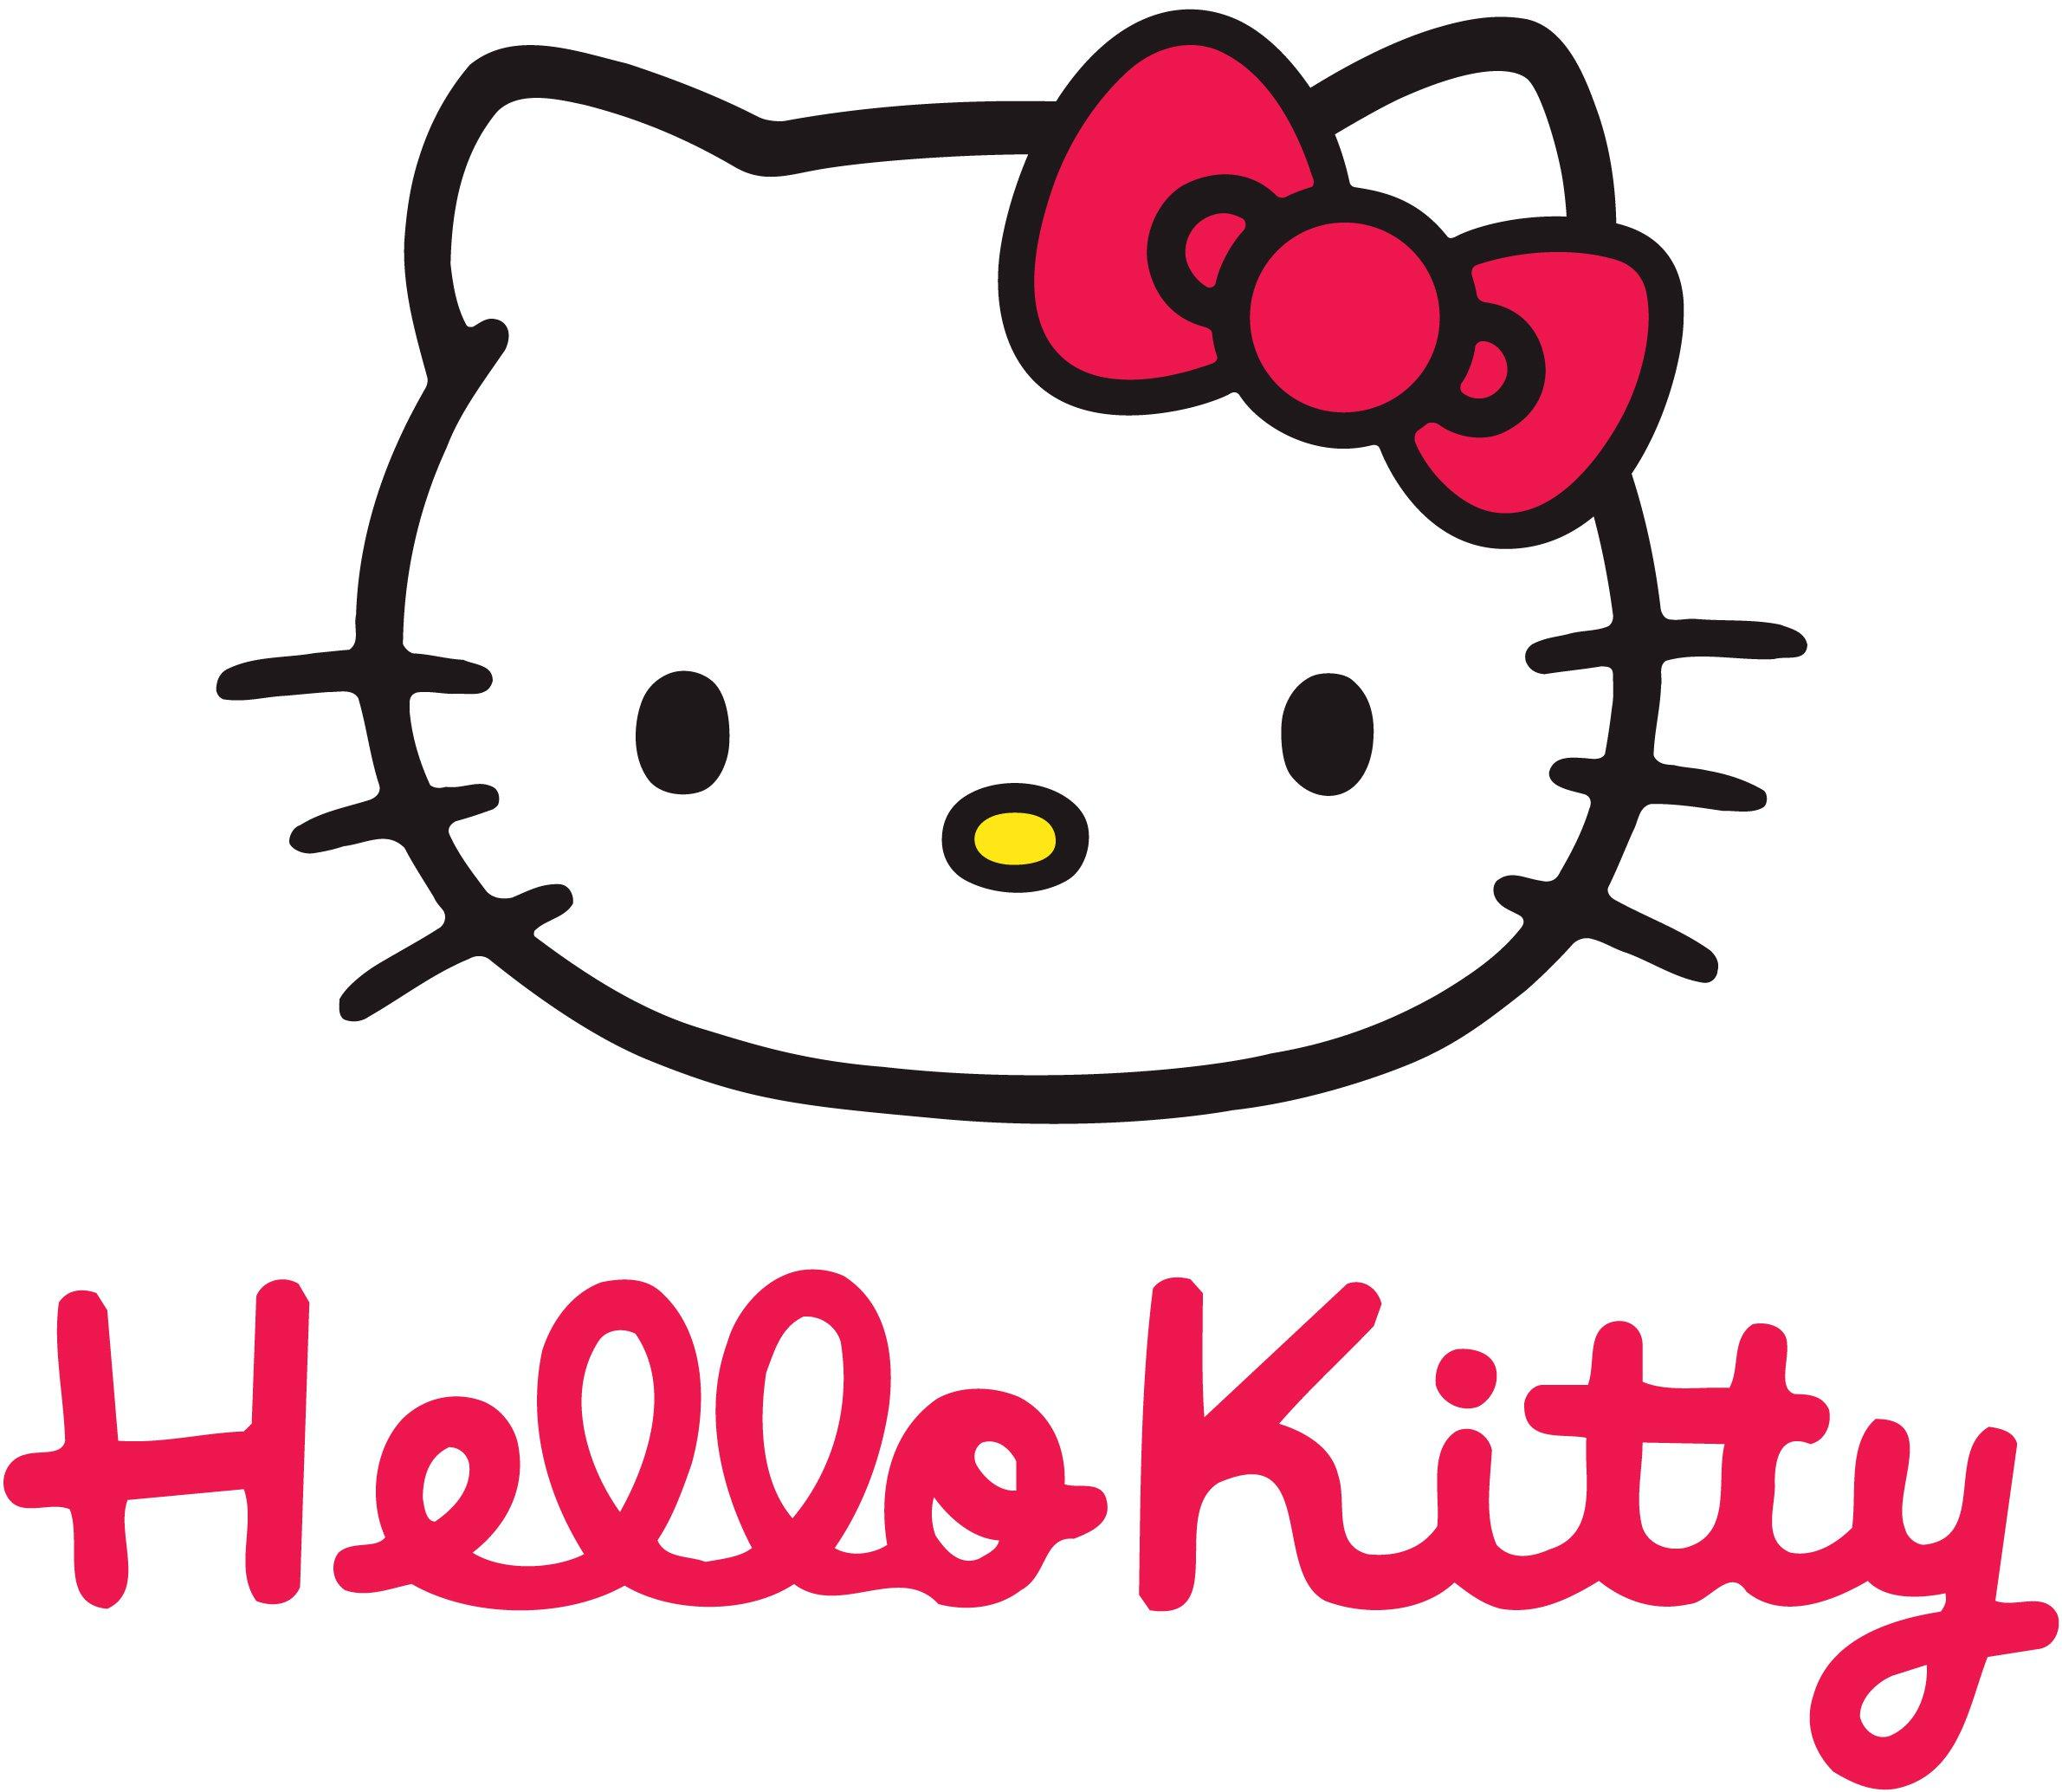 From $5.85 Hello Kitty @ Amazon Japan